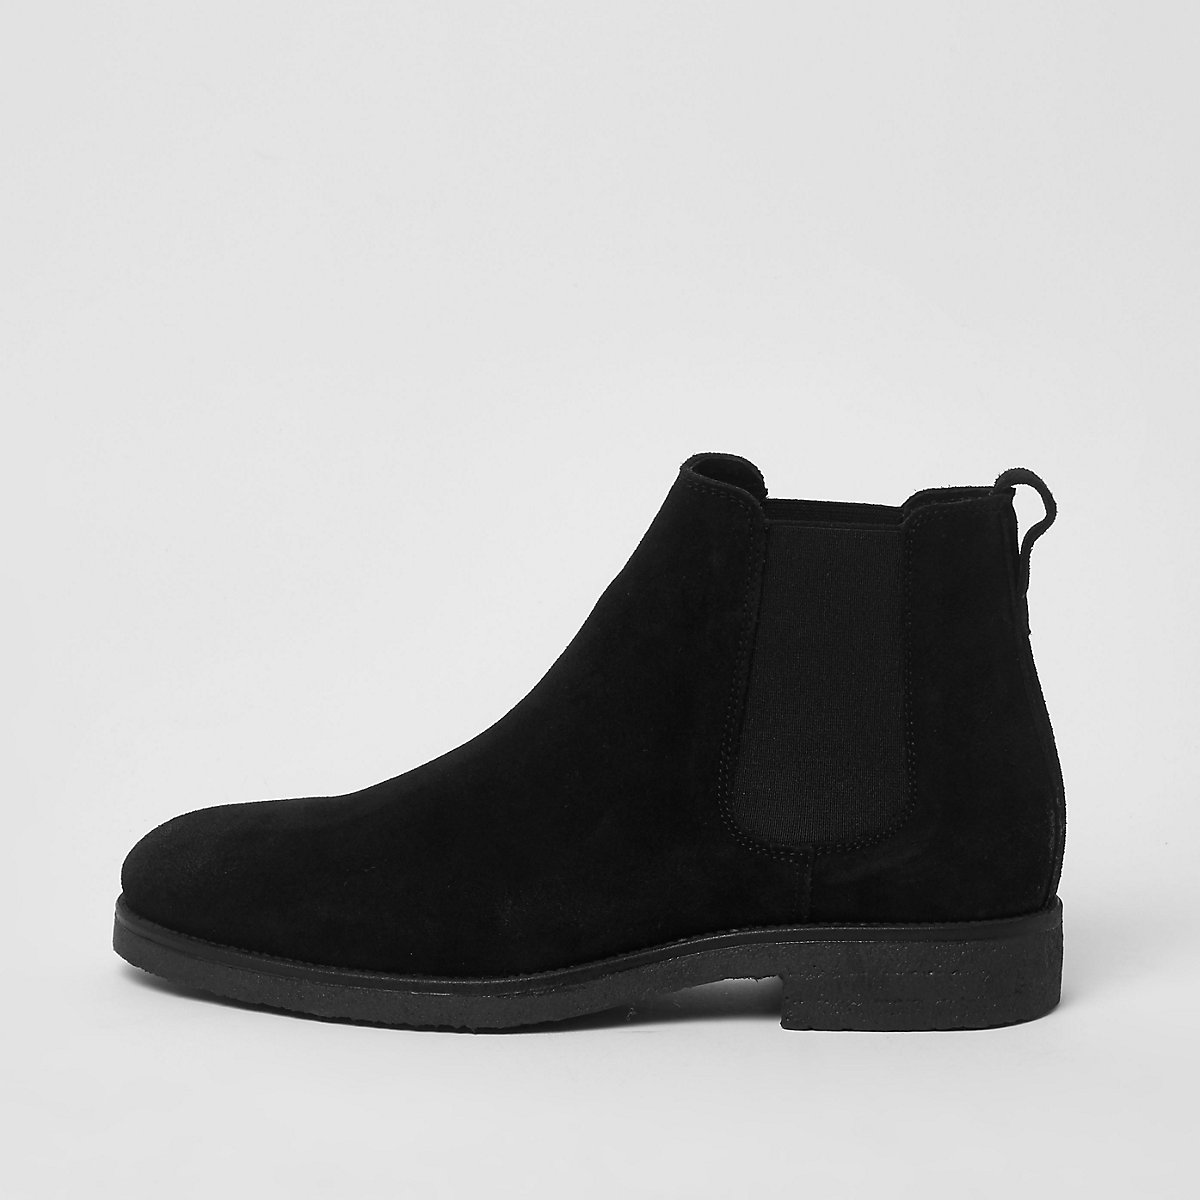 Black wide fit suede chelsea boots